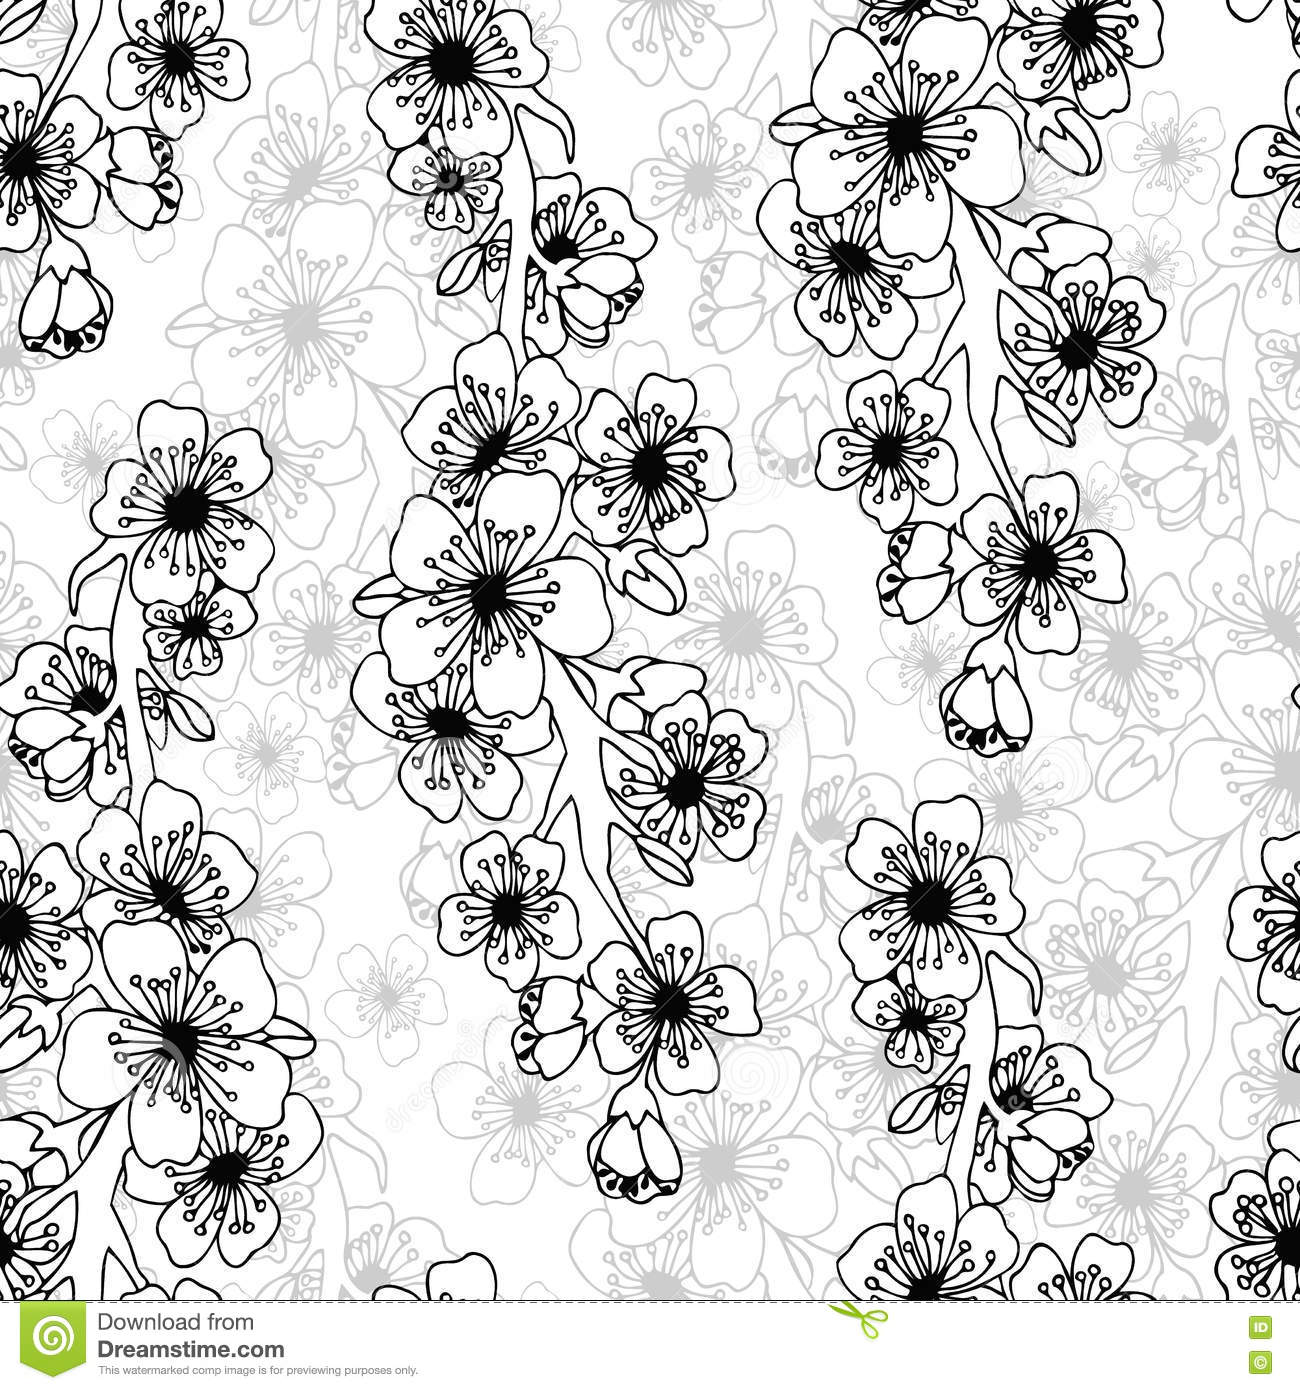 Doodle Art Abstract Seamless Pattern With Flowers Stock Vector